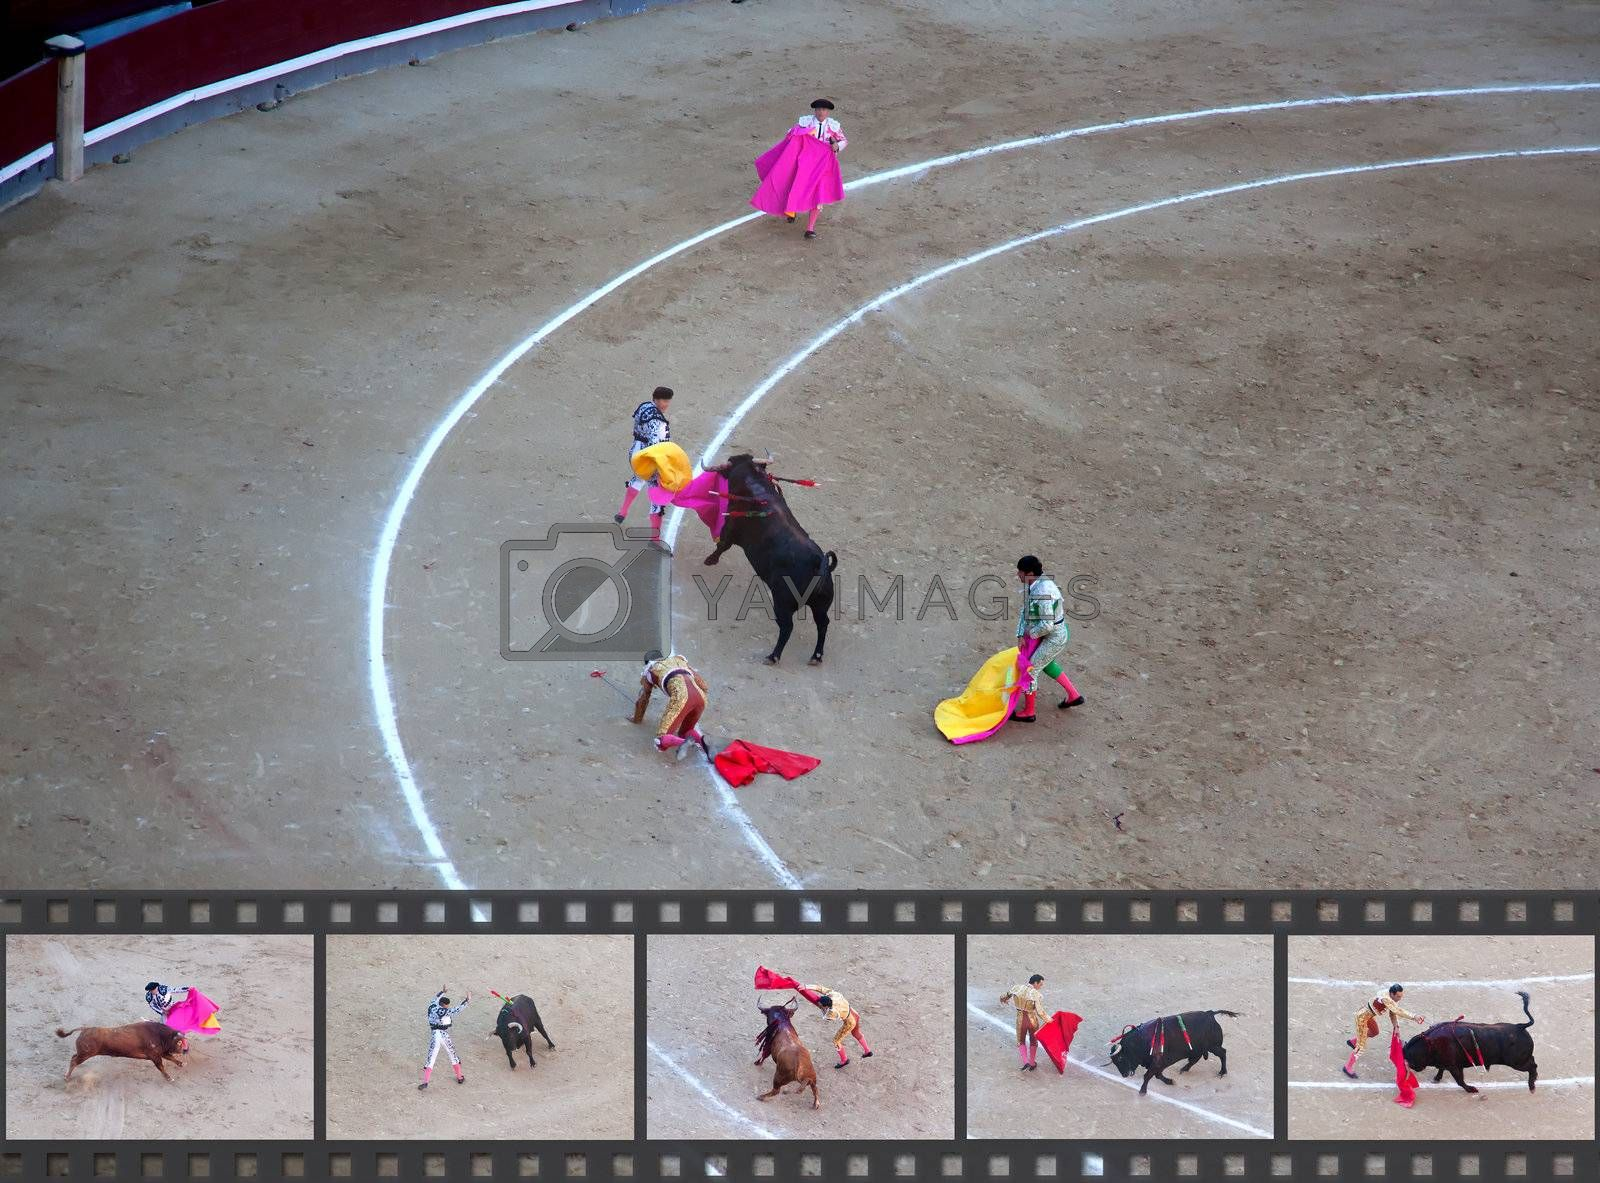 a bullfighter has most got hurt in a bullfight. Some factual images of a bullfight in Madrid, Spain on OCTOBER 1, 2010.